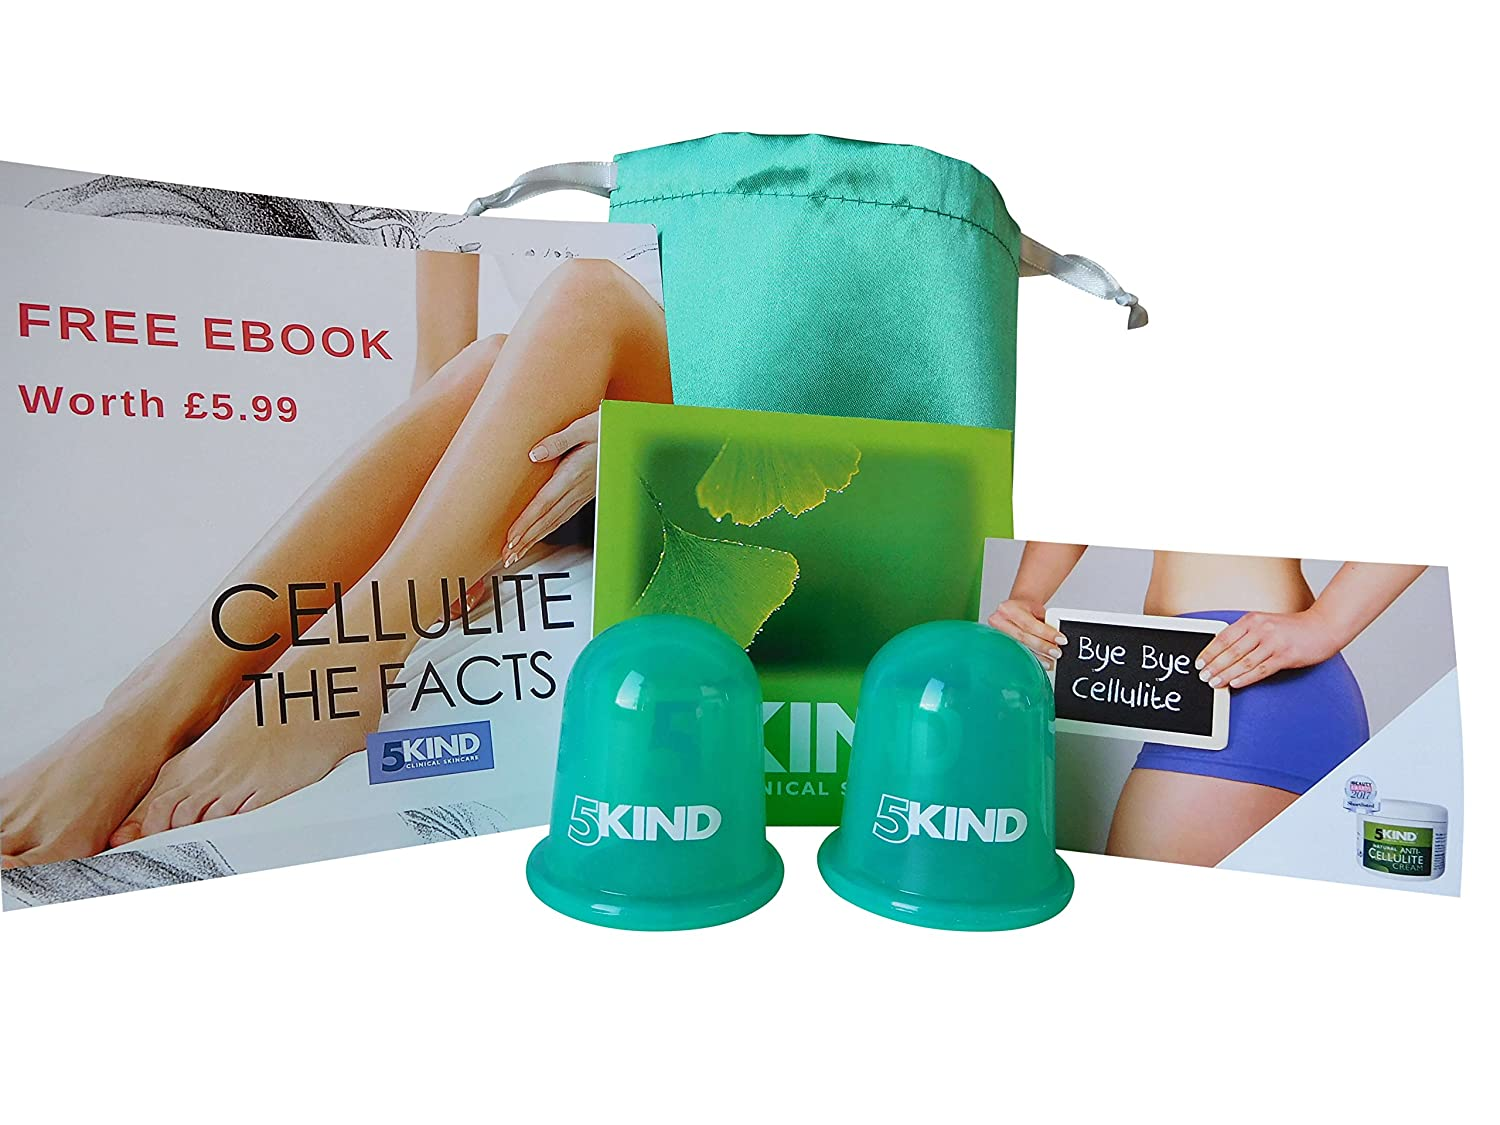 Anti Cellulite Cups Vacuum Silicone Cups Cupping Set by 5kind-Full Instructions, Free Satin Bag, Free Cellulite Ebook worth £5.99 and Discount Voucher for 5kind Professional Cellulite Cream 5kind clinical skincare